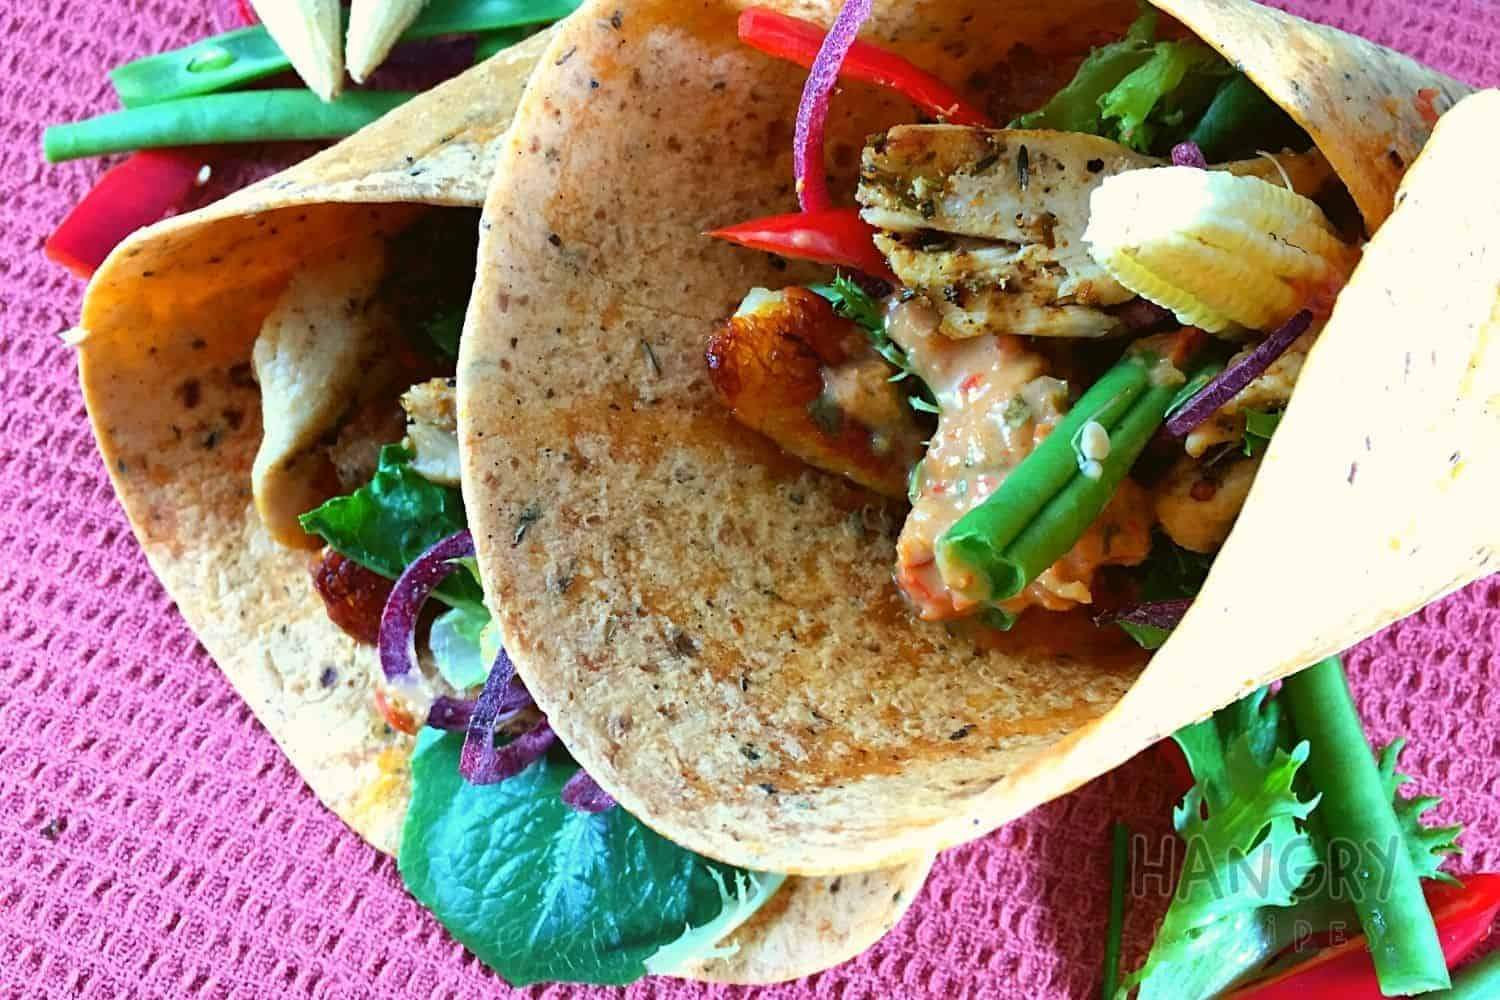 Healthy Mexican Burritos with Chicken and Halloumi Cheese